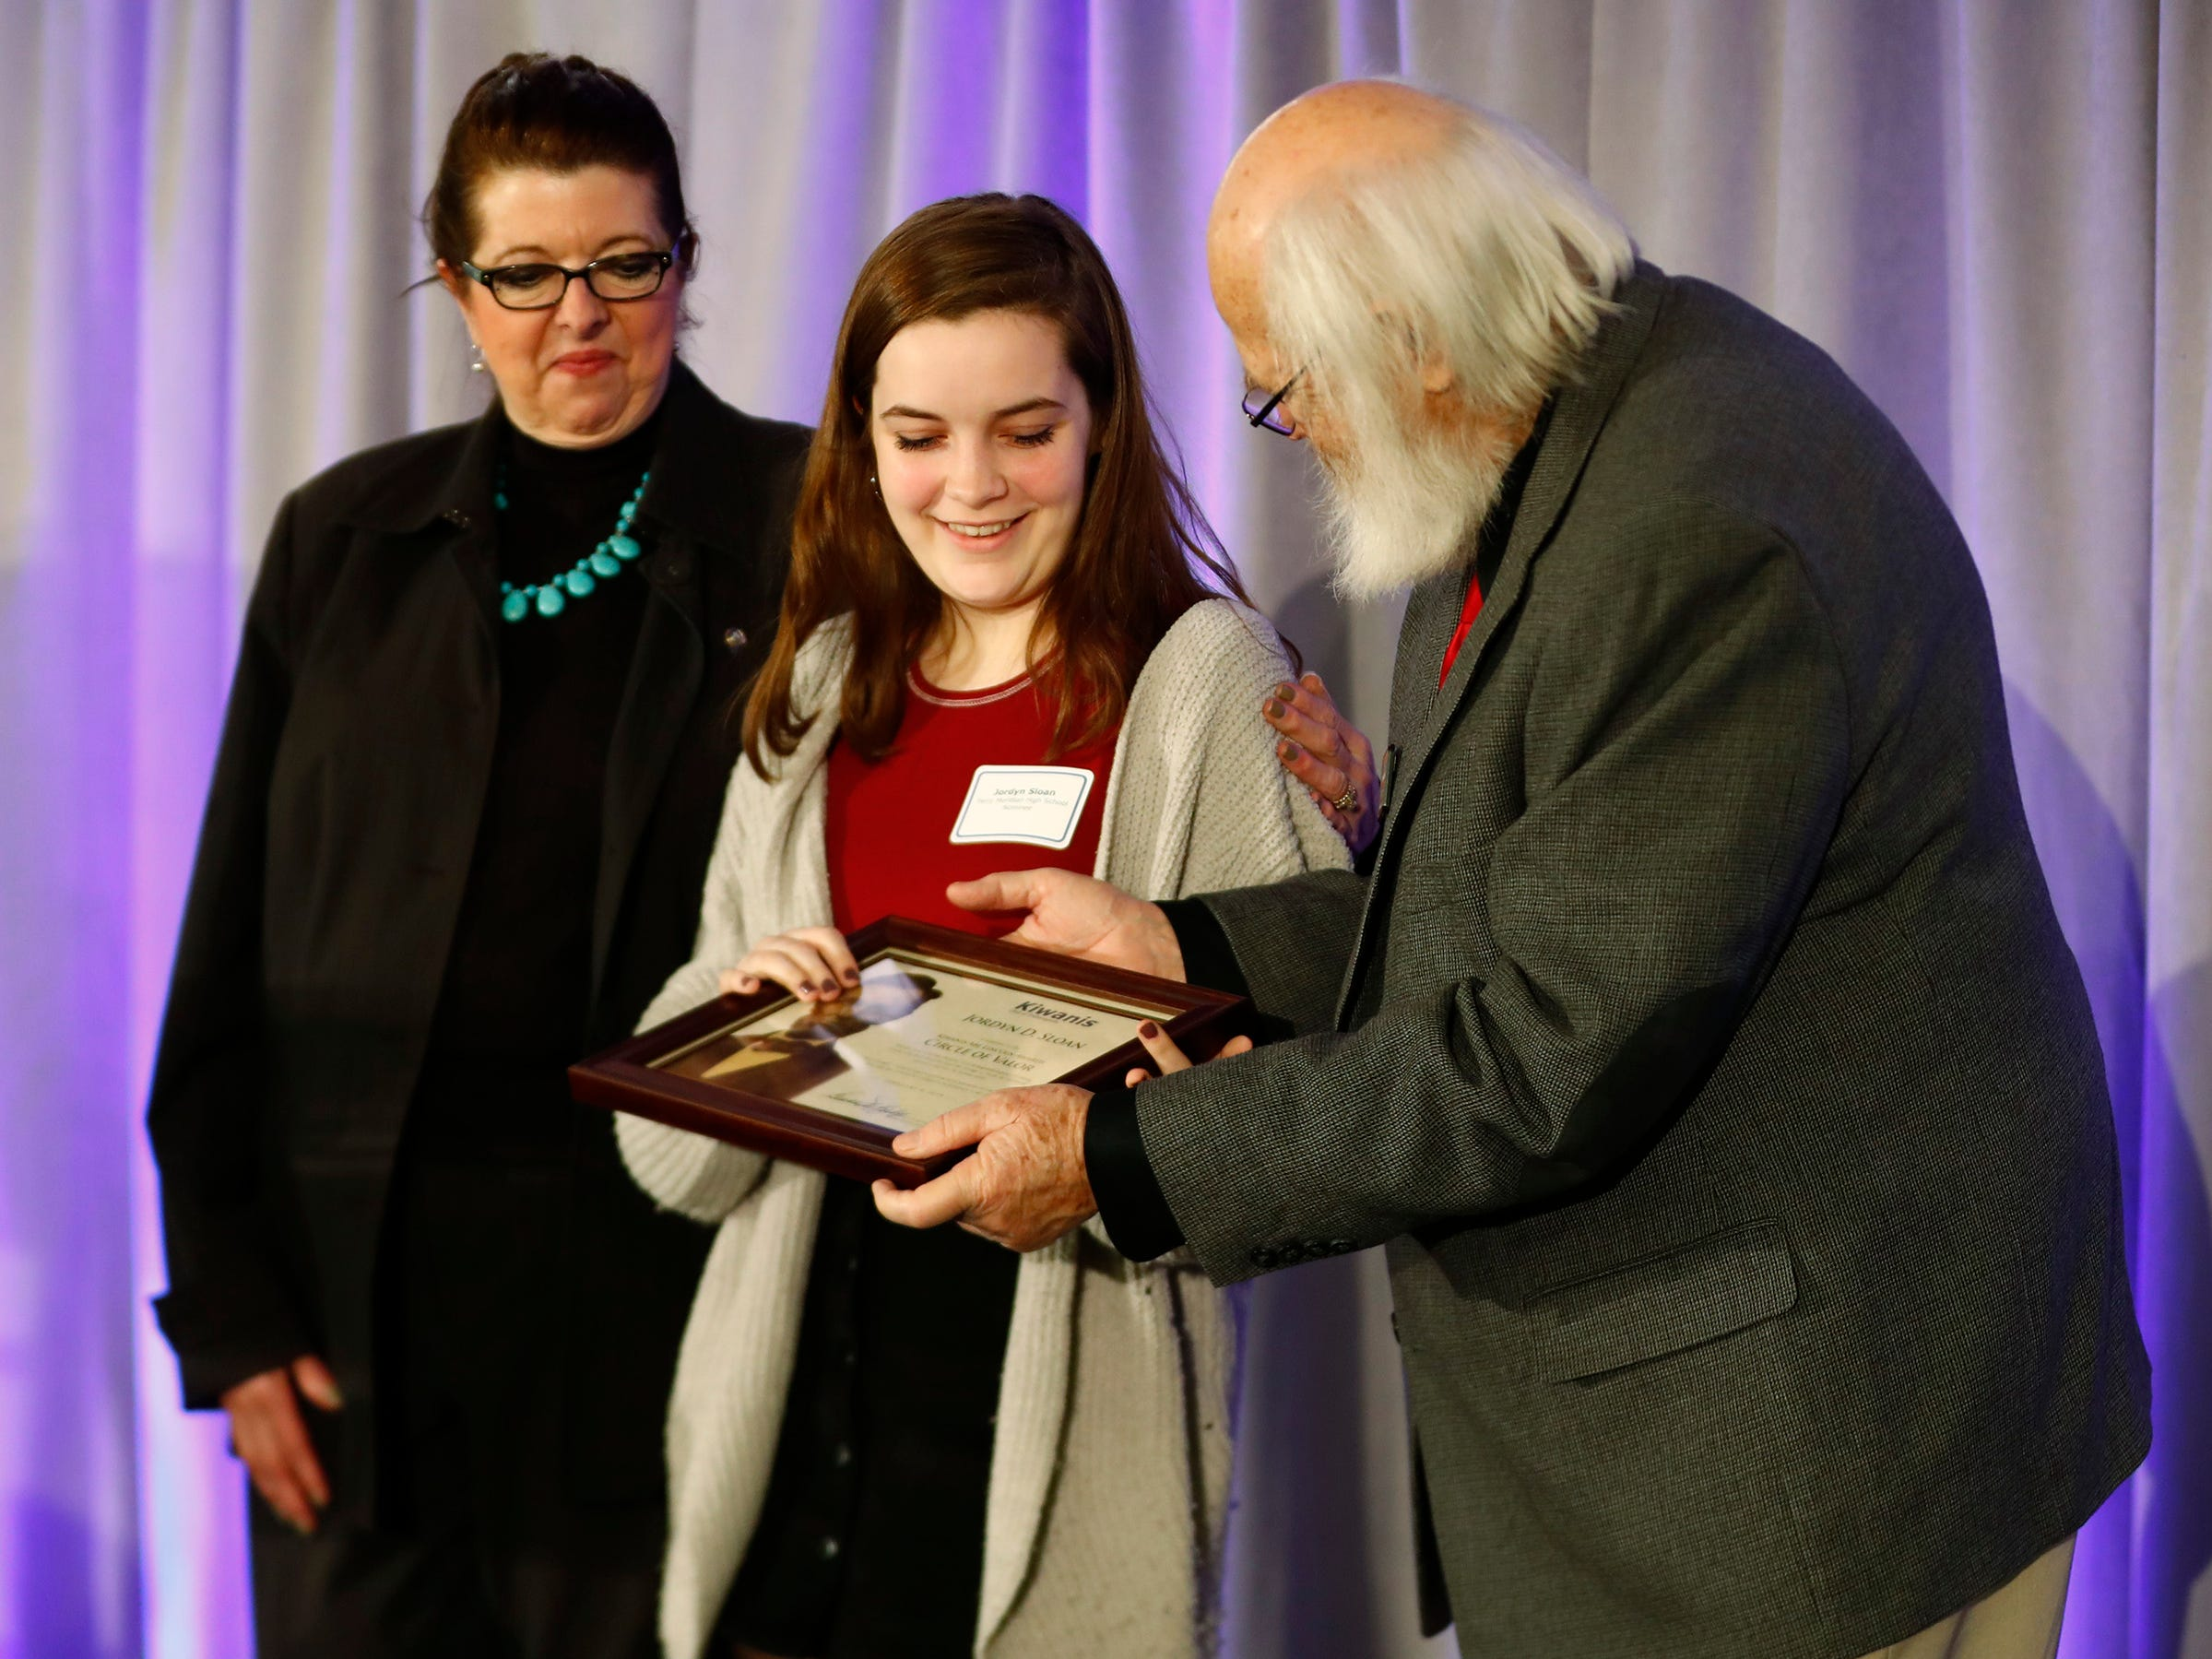 Perry Meridian High School's Jordyn Sloan, center, is honored with a Circle of Valor award at the 44th Annual Abe Lincoln Awards Program, Friday, Feb. 8, 2019. The Kiwanis Club of Indianapolis program was held at Ivy Tech Community College.  20 high school student were honored at the annual event which celebrates overcoming adversity in life to succeed.